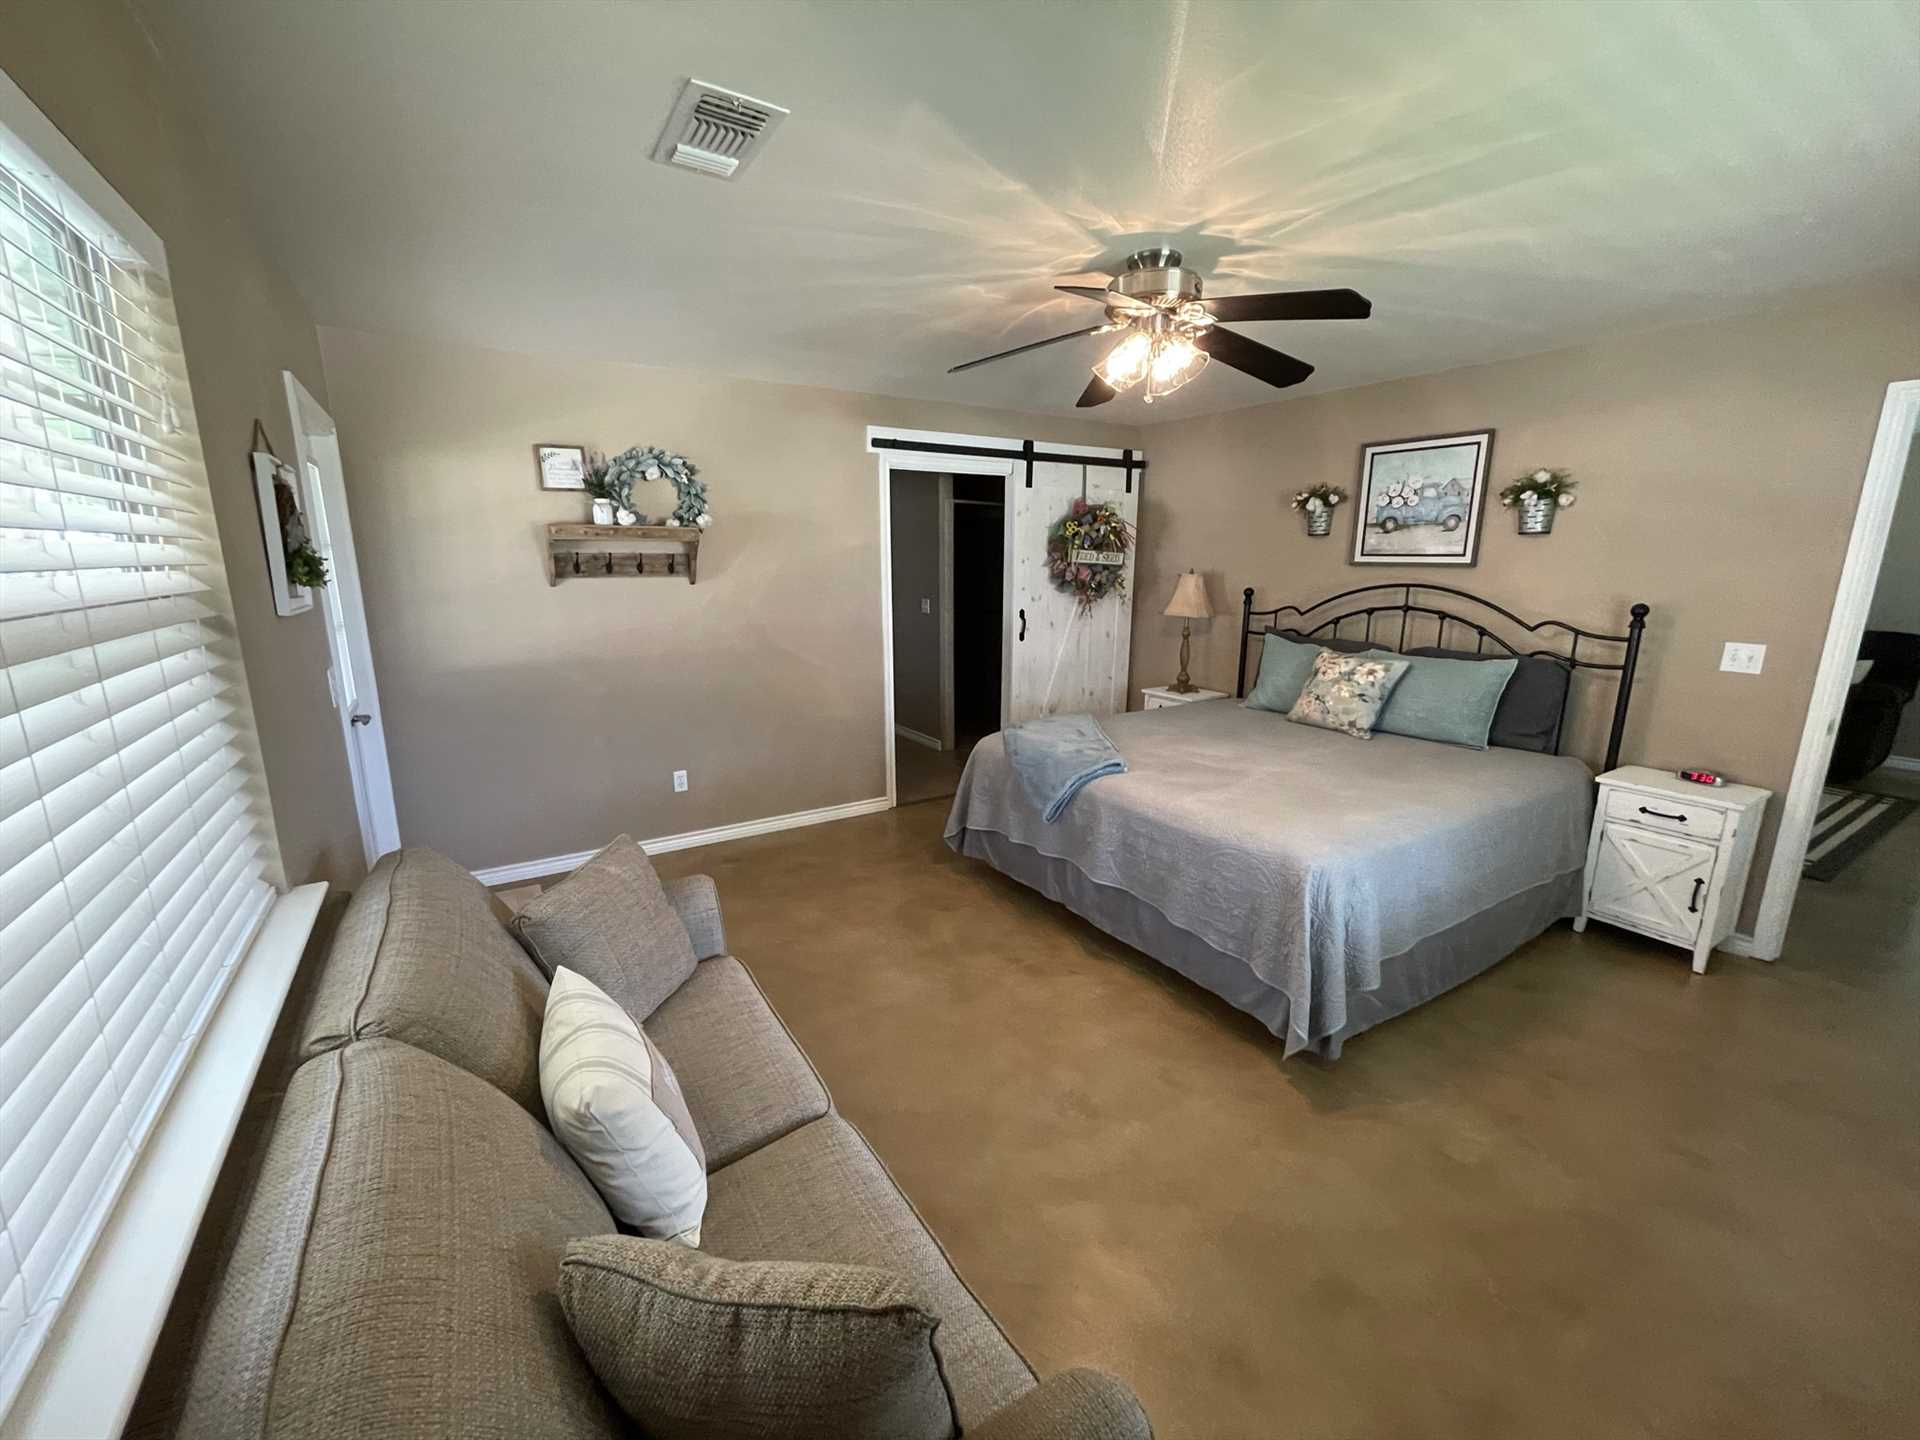 Three comfy bedrooms come equipped with two king beds, a queen, and a full-sized bed...awesome sleeping space for the whole family!